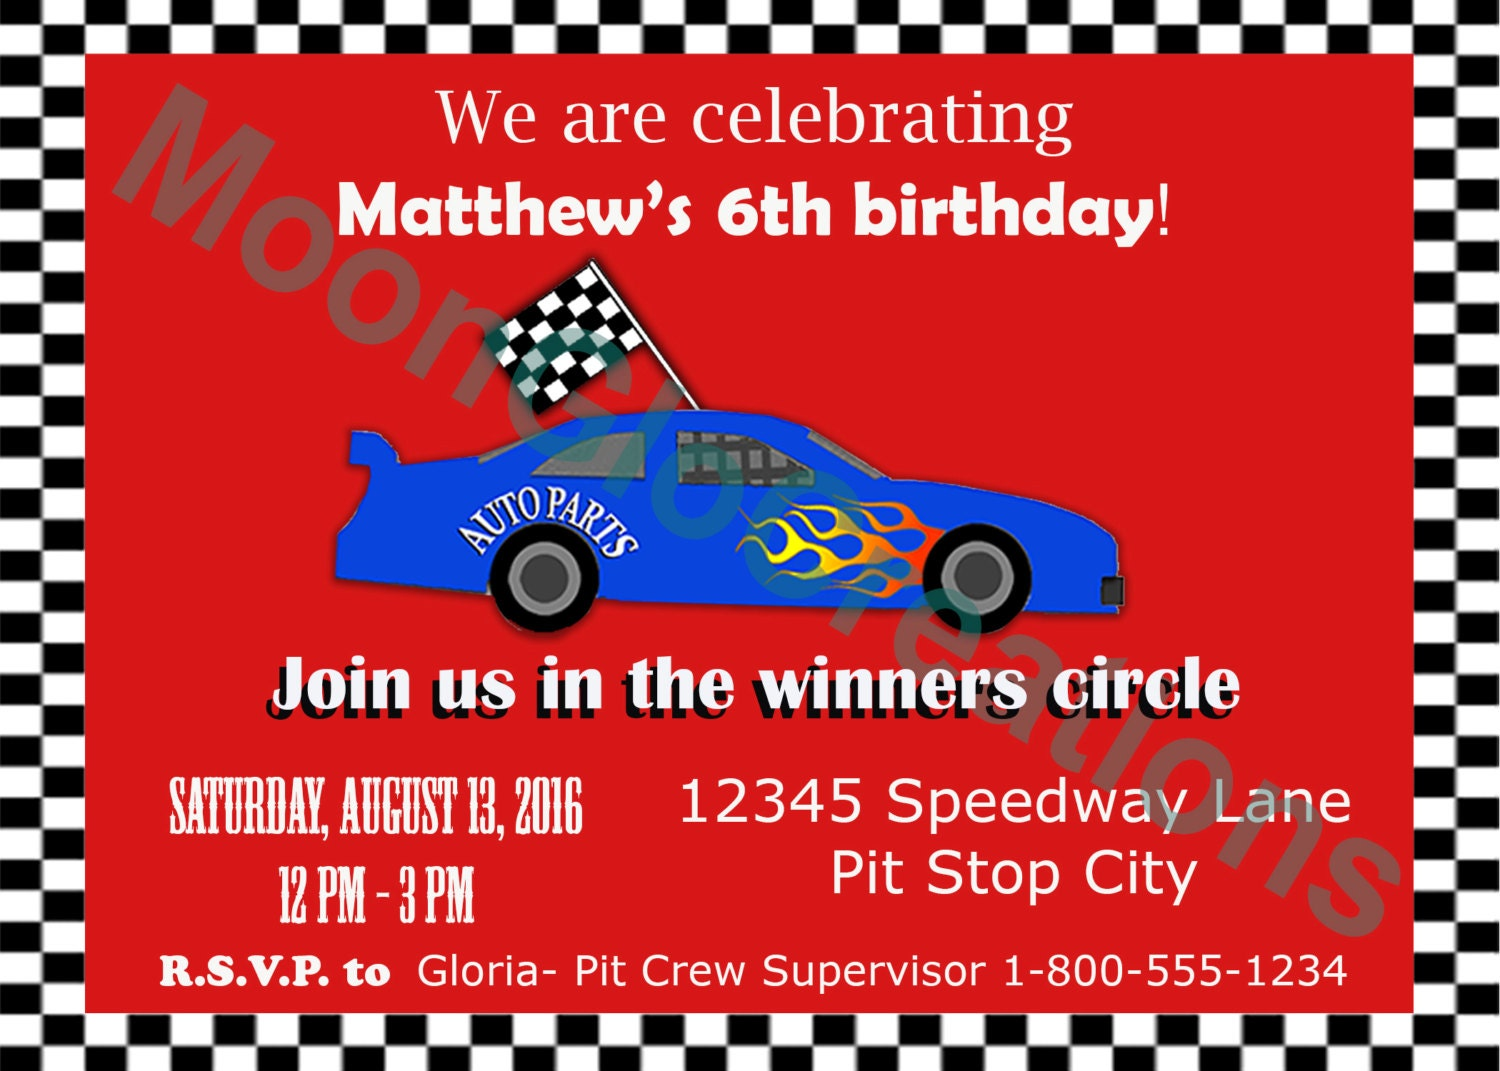 Race car theme Party invitation Birthday party Printable | Etsy